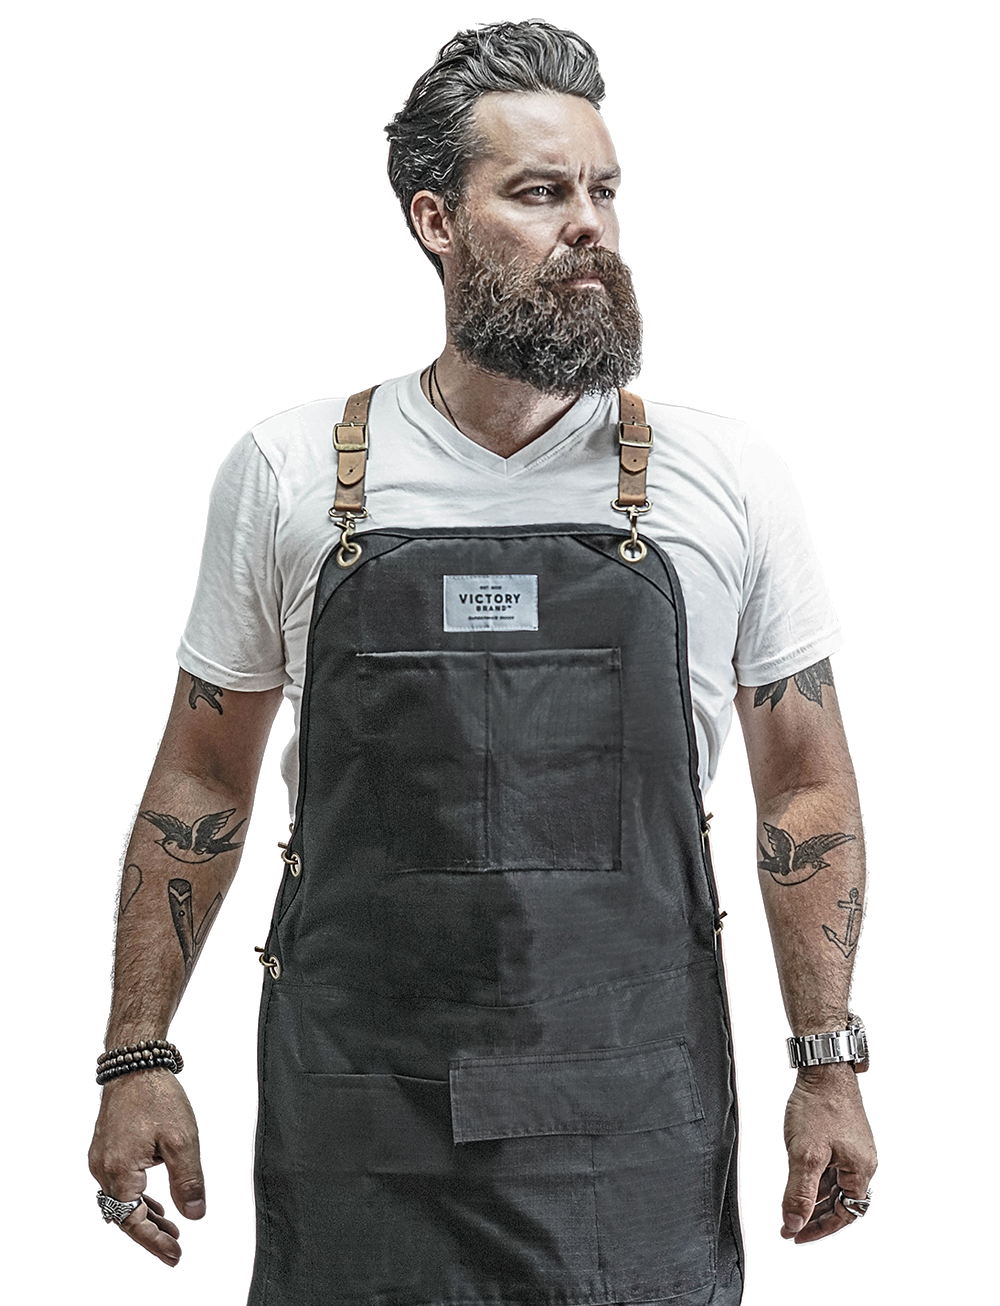 Tactical Apron for barbers and hairstylists by Victory Barber & Brand